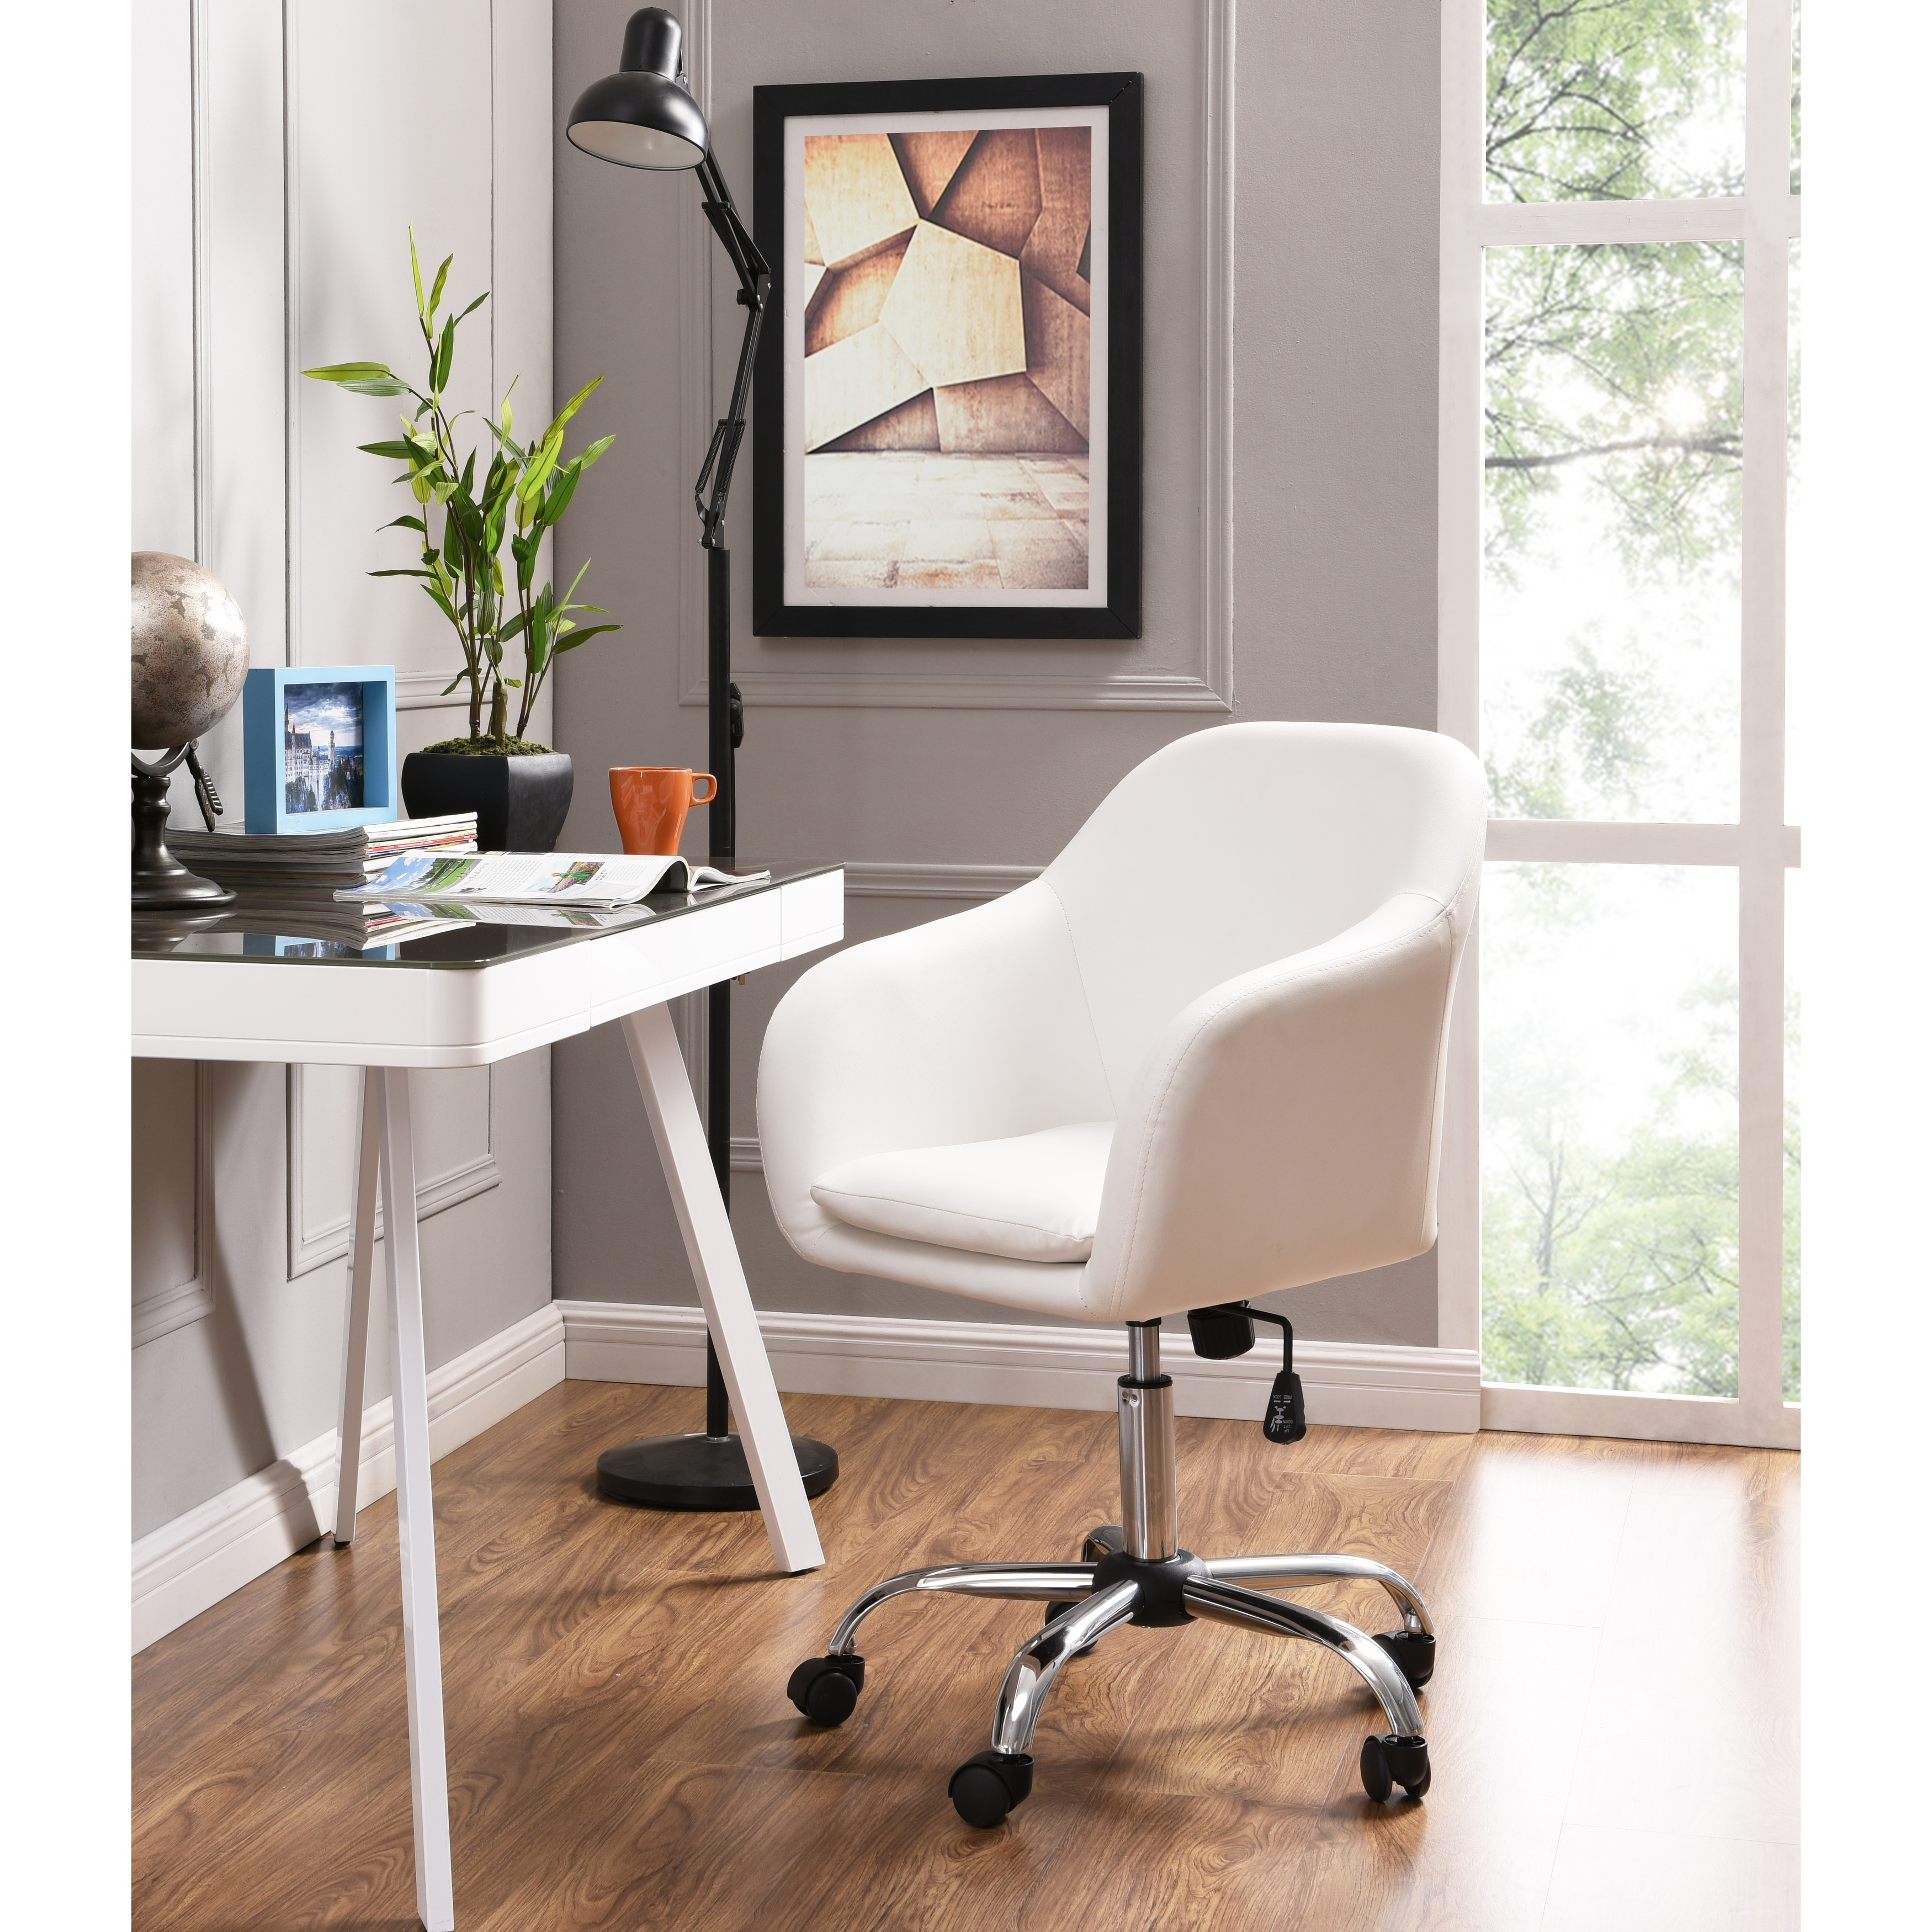 Home Office Desk Chairs Home Office Chair Executive Mid Back Computer Table Desk Chair Swivel Height Adjustable Ergonomic With Armrest White